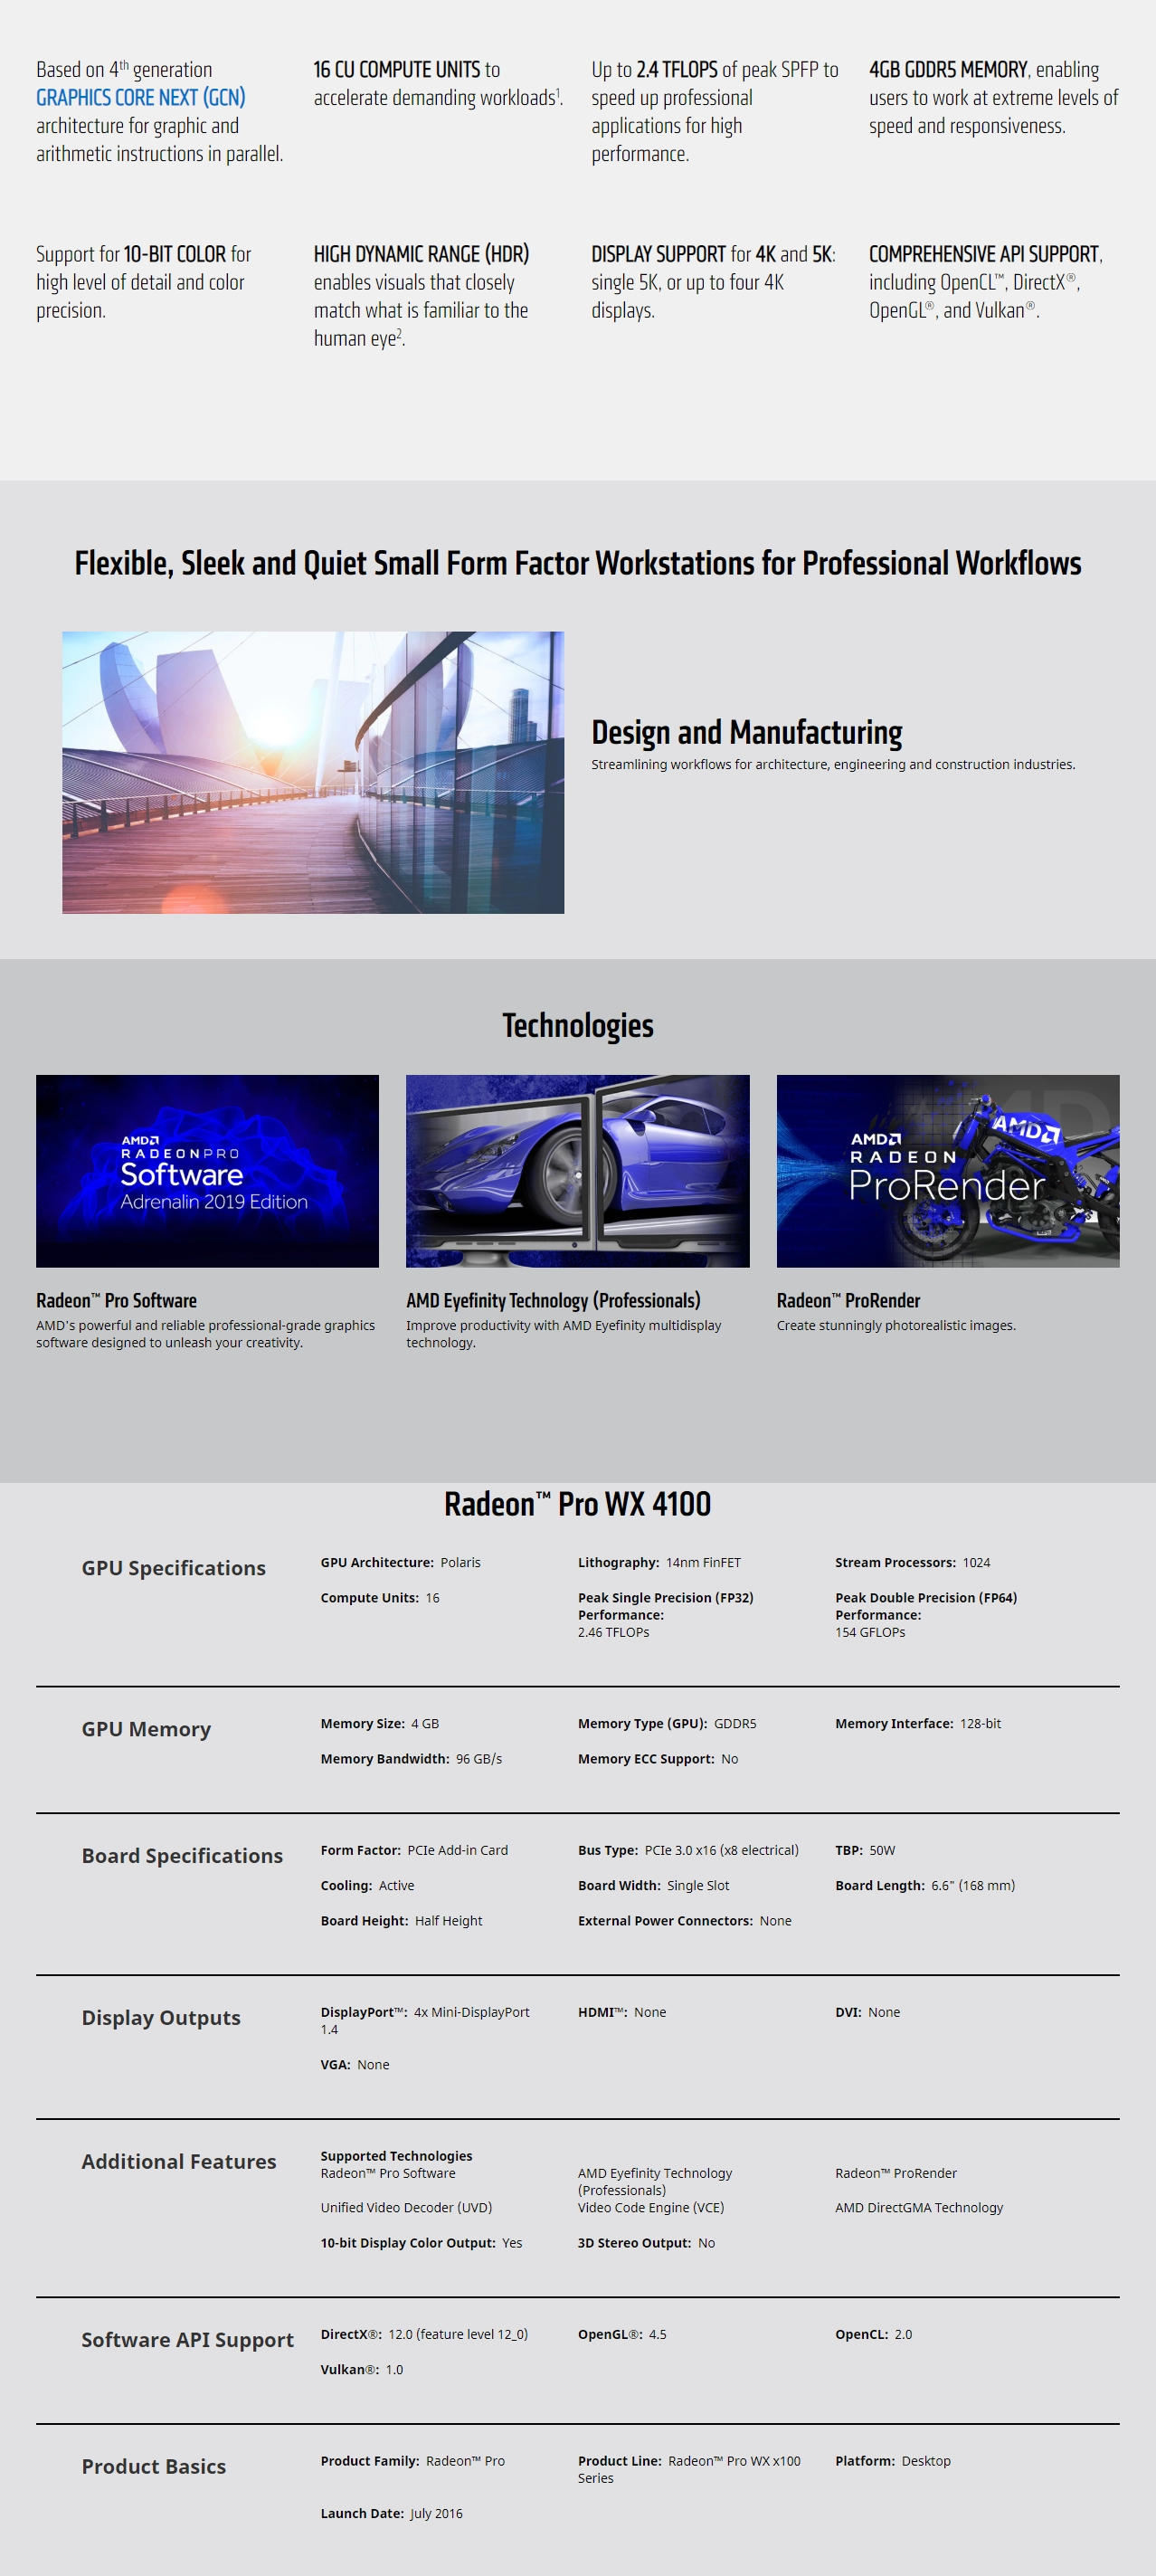 A large marketing image providing additional information about the product AMD Radeon Pro WX 4100 4GB GDDR5 - Additional alt info not provided